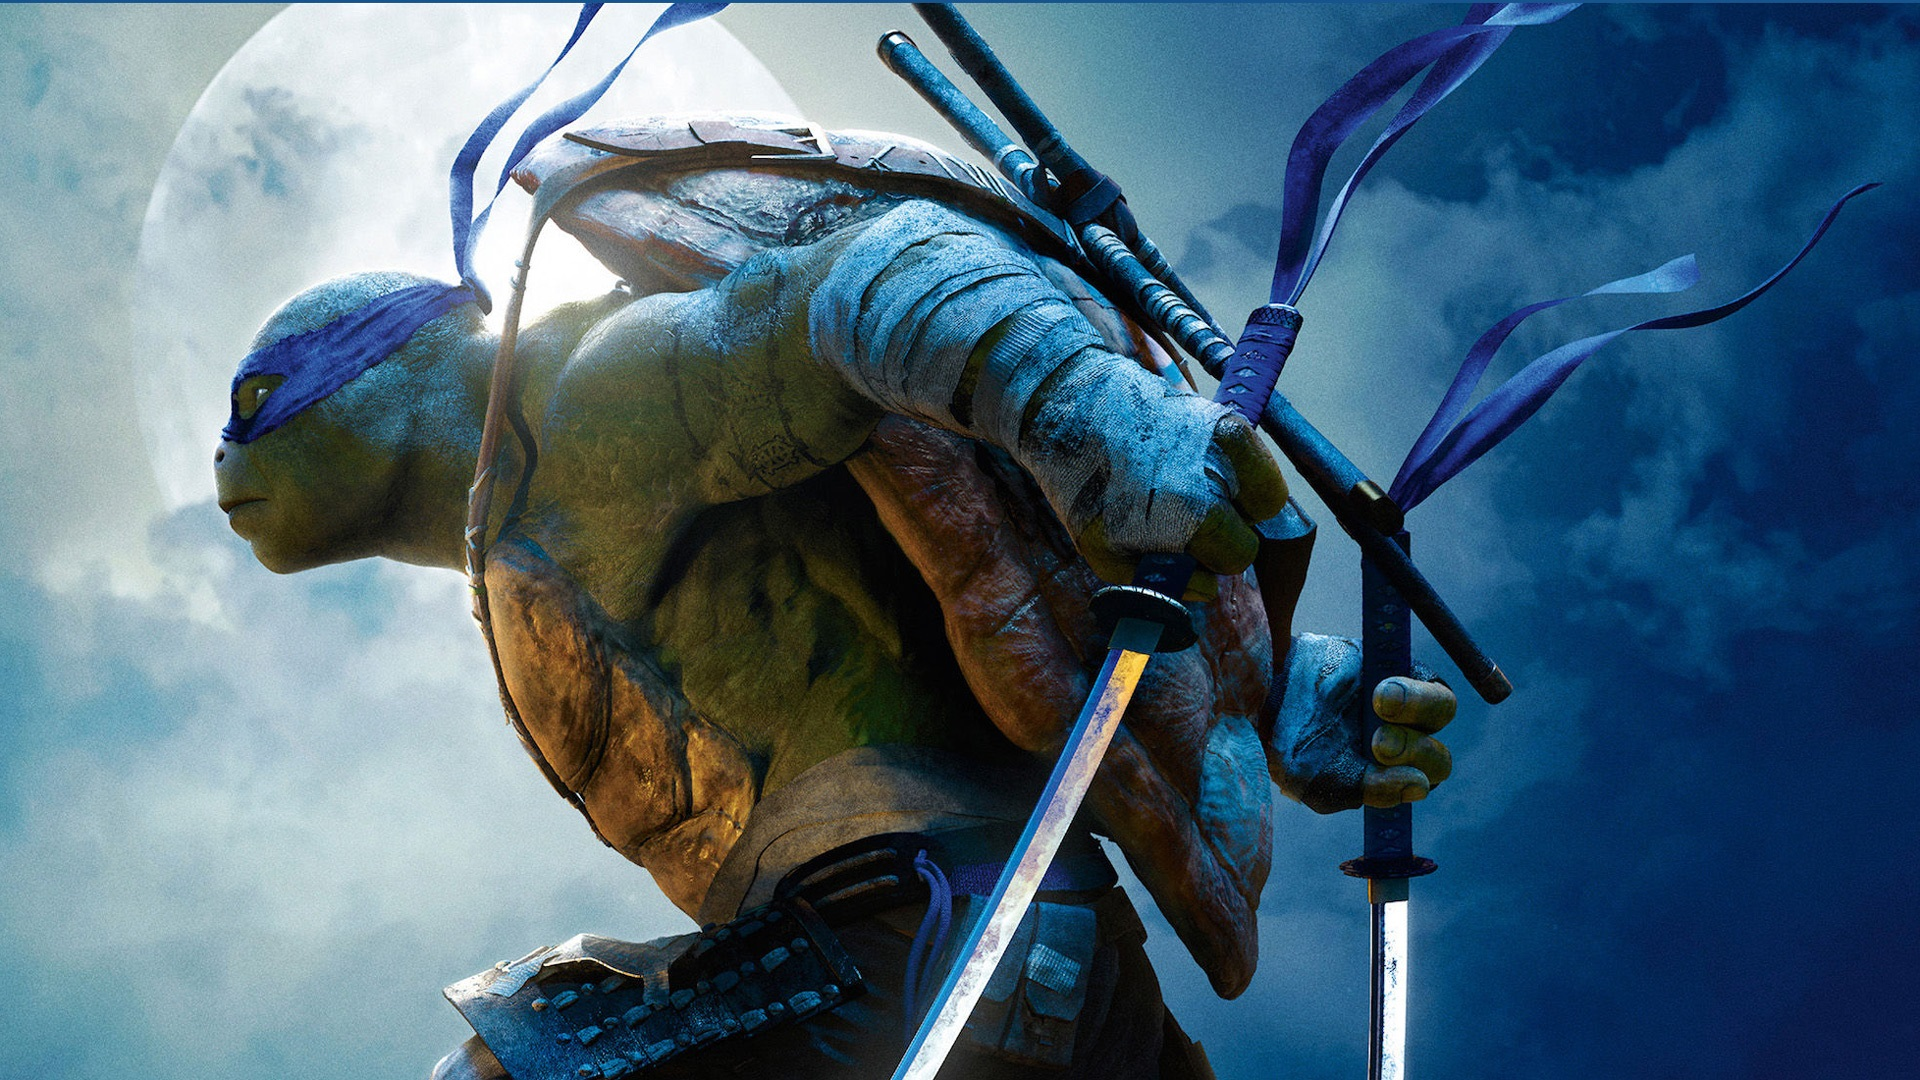 teenage mutant ninja turtles 2016 movie free download